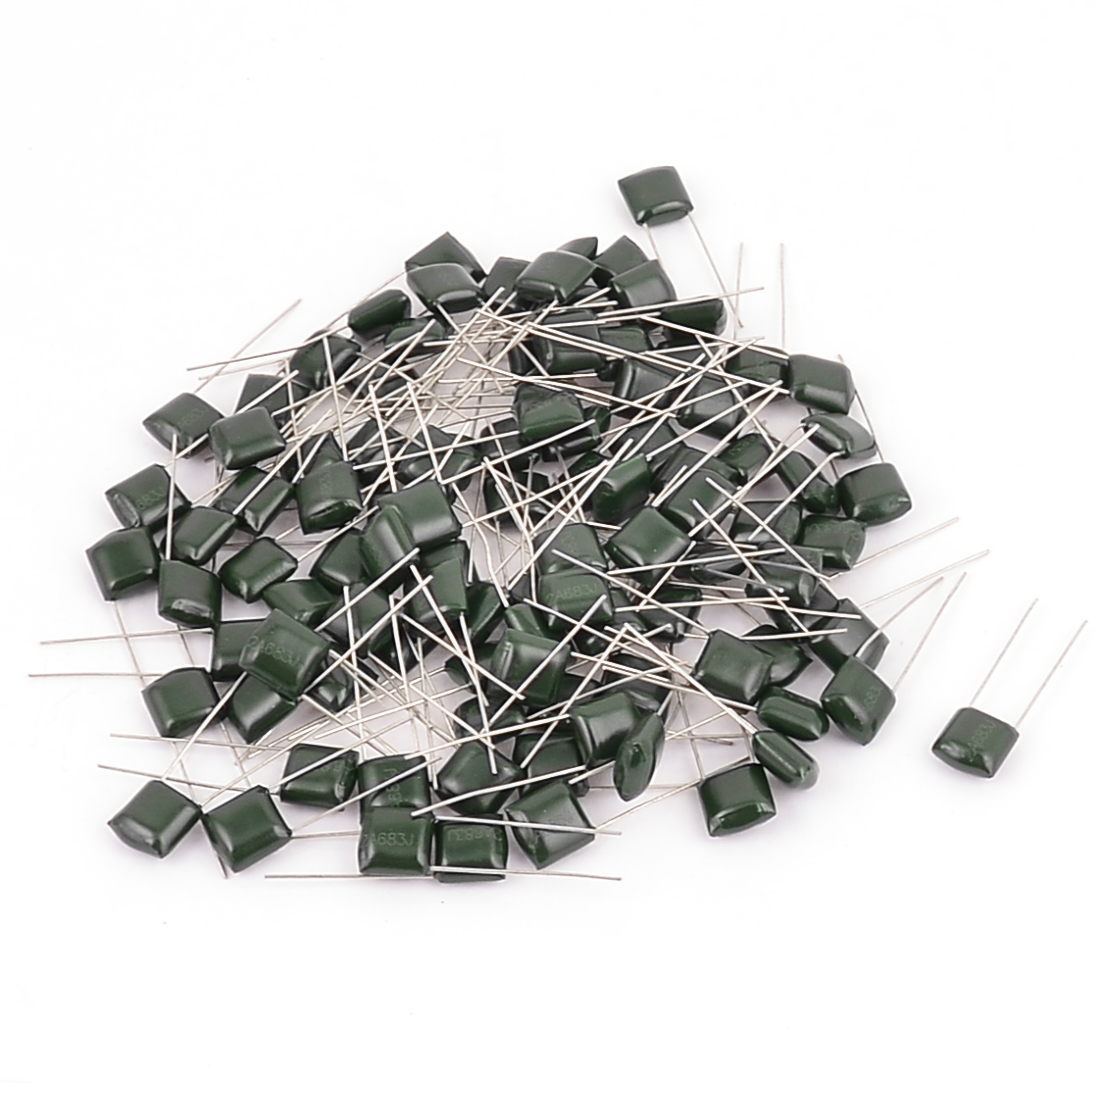 100pcs 2A683J 100V 0.068uF 5% Radial Lead Polyester Film Capacitor